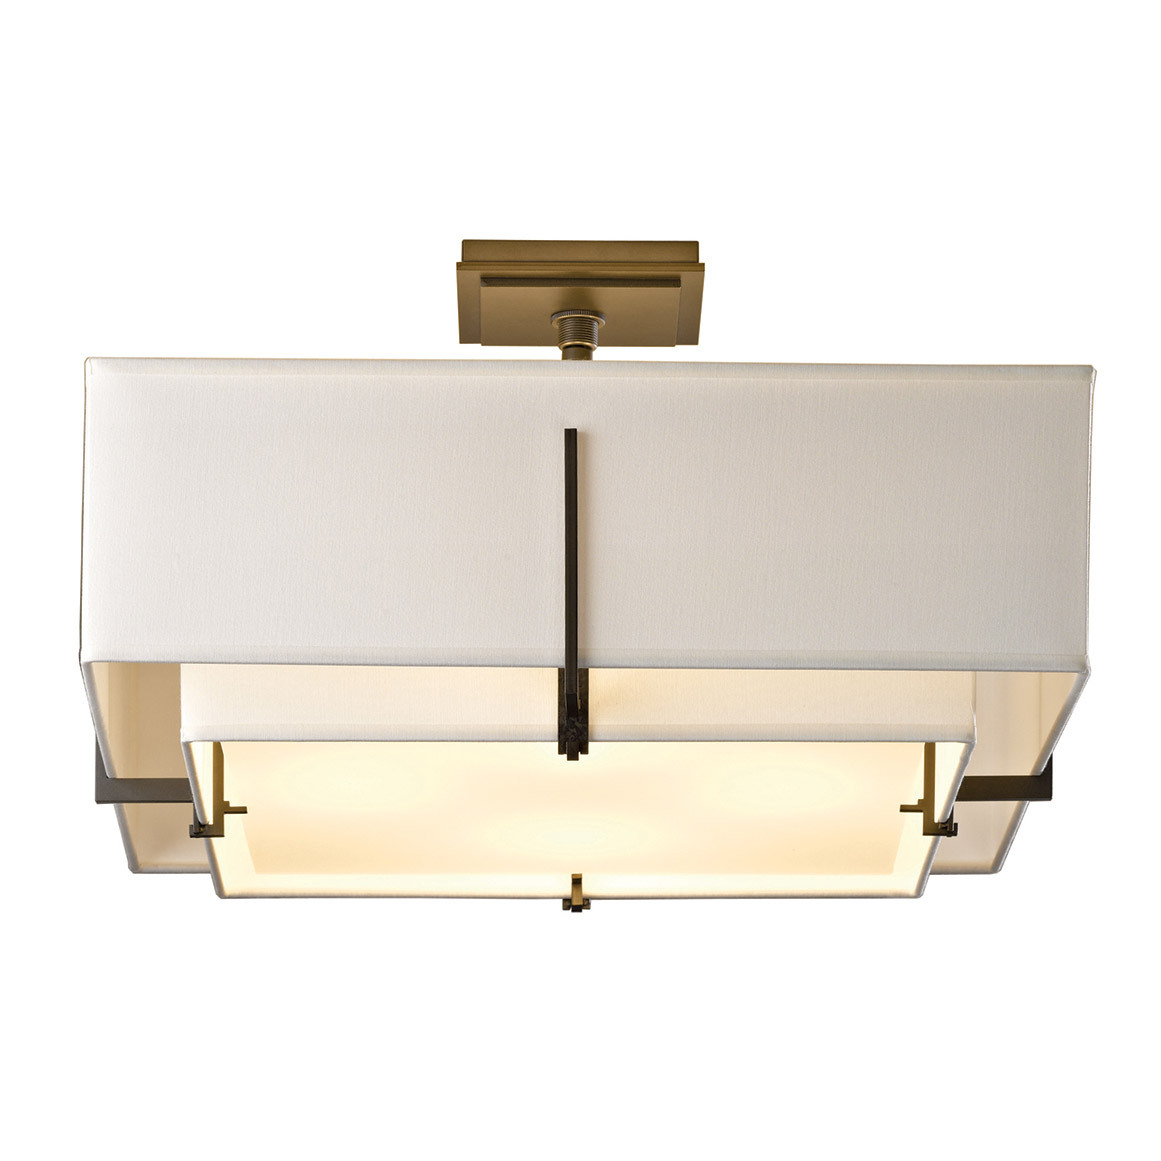 Exos square double shade semi flush ceiling light by hubbardton exos square double shade semi flush ceiling light by hubbardton forge 126510 1100 aloadofball Images